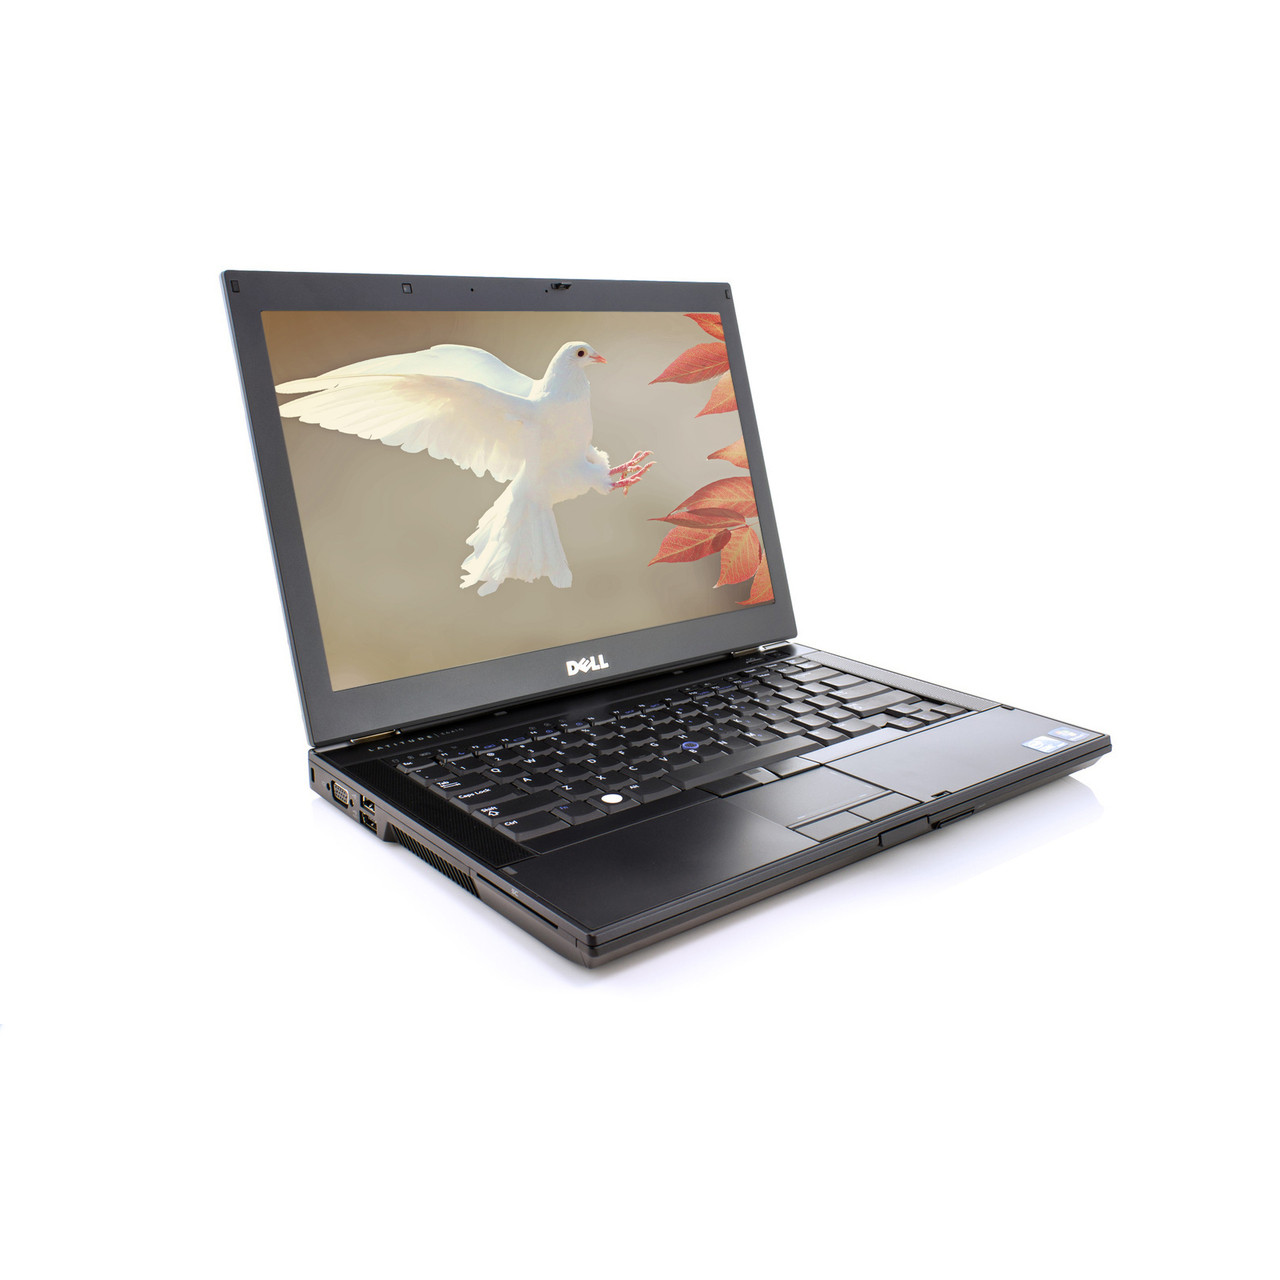 Dell Latitude E6510 Notebook Multi-Touch Touchpad X64 Driver Download